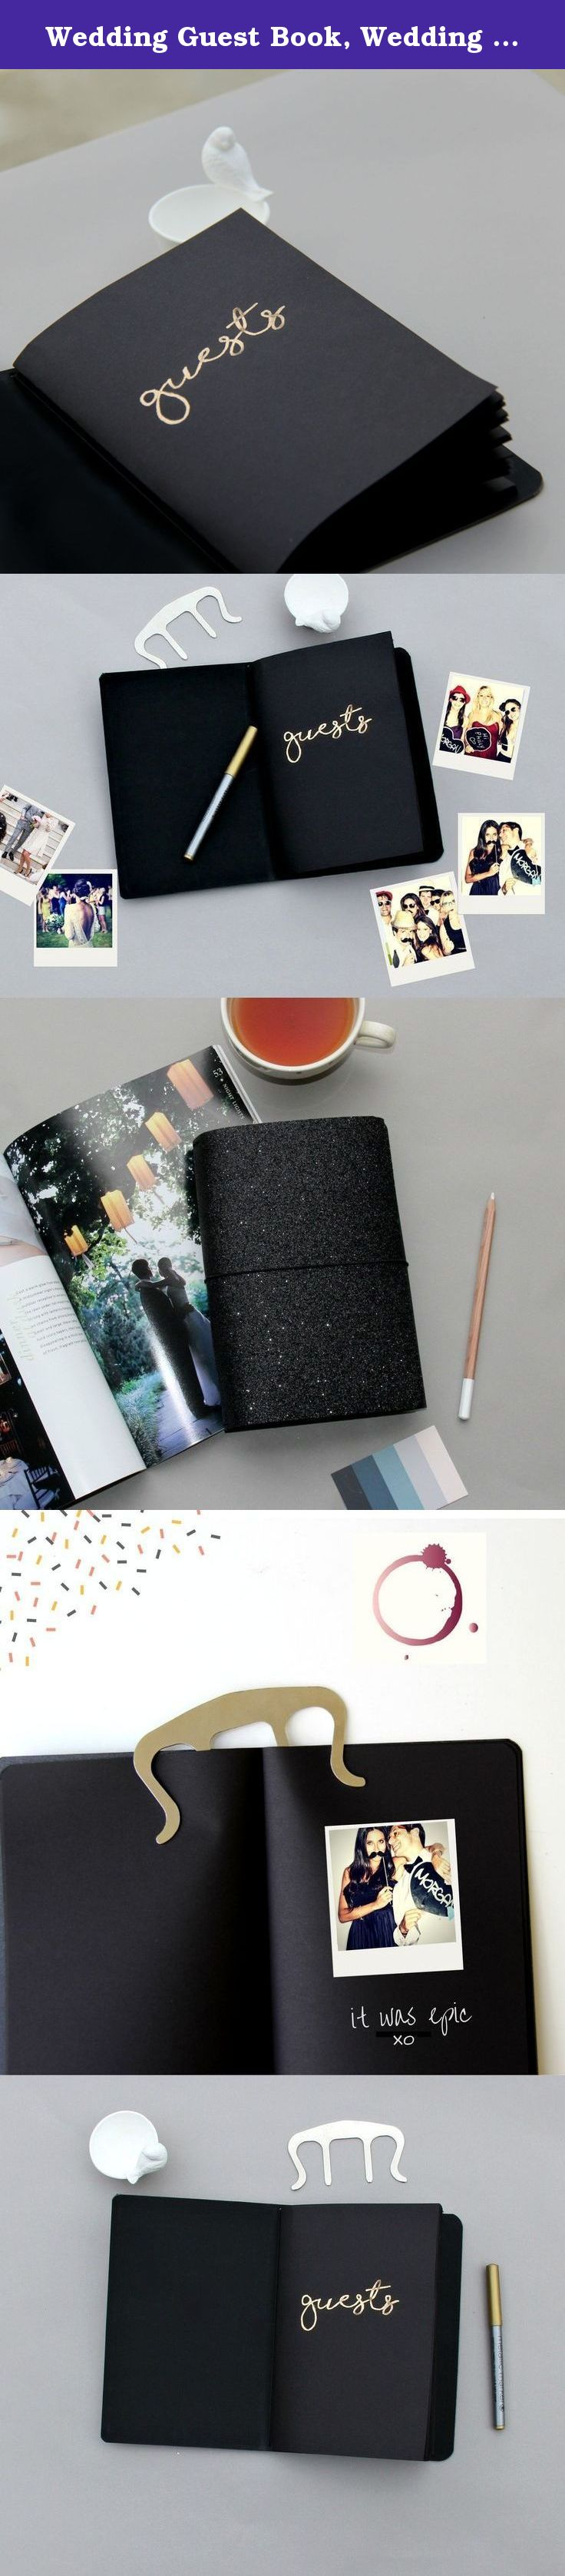 Wedding Guest Book Alternative Glamorous Keepsake Black Glitter Cover With Paper Guestbook Album Insert For Instax Polaroids And